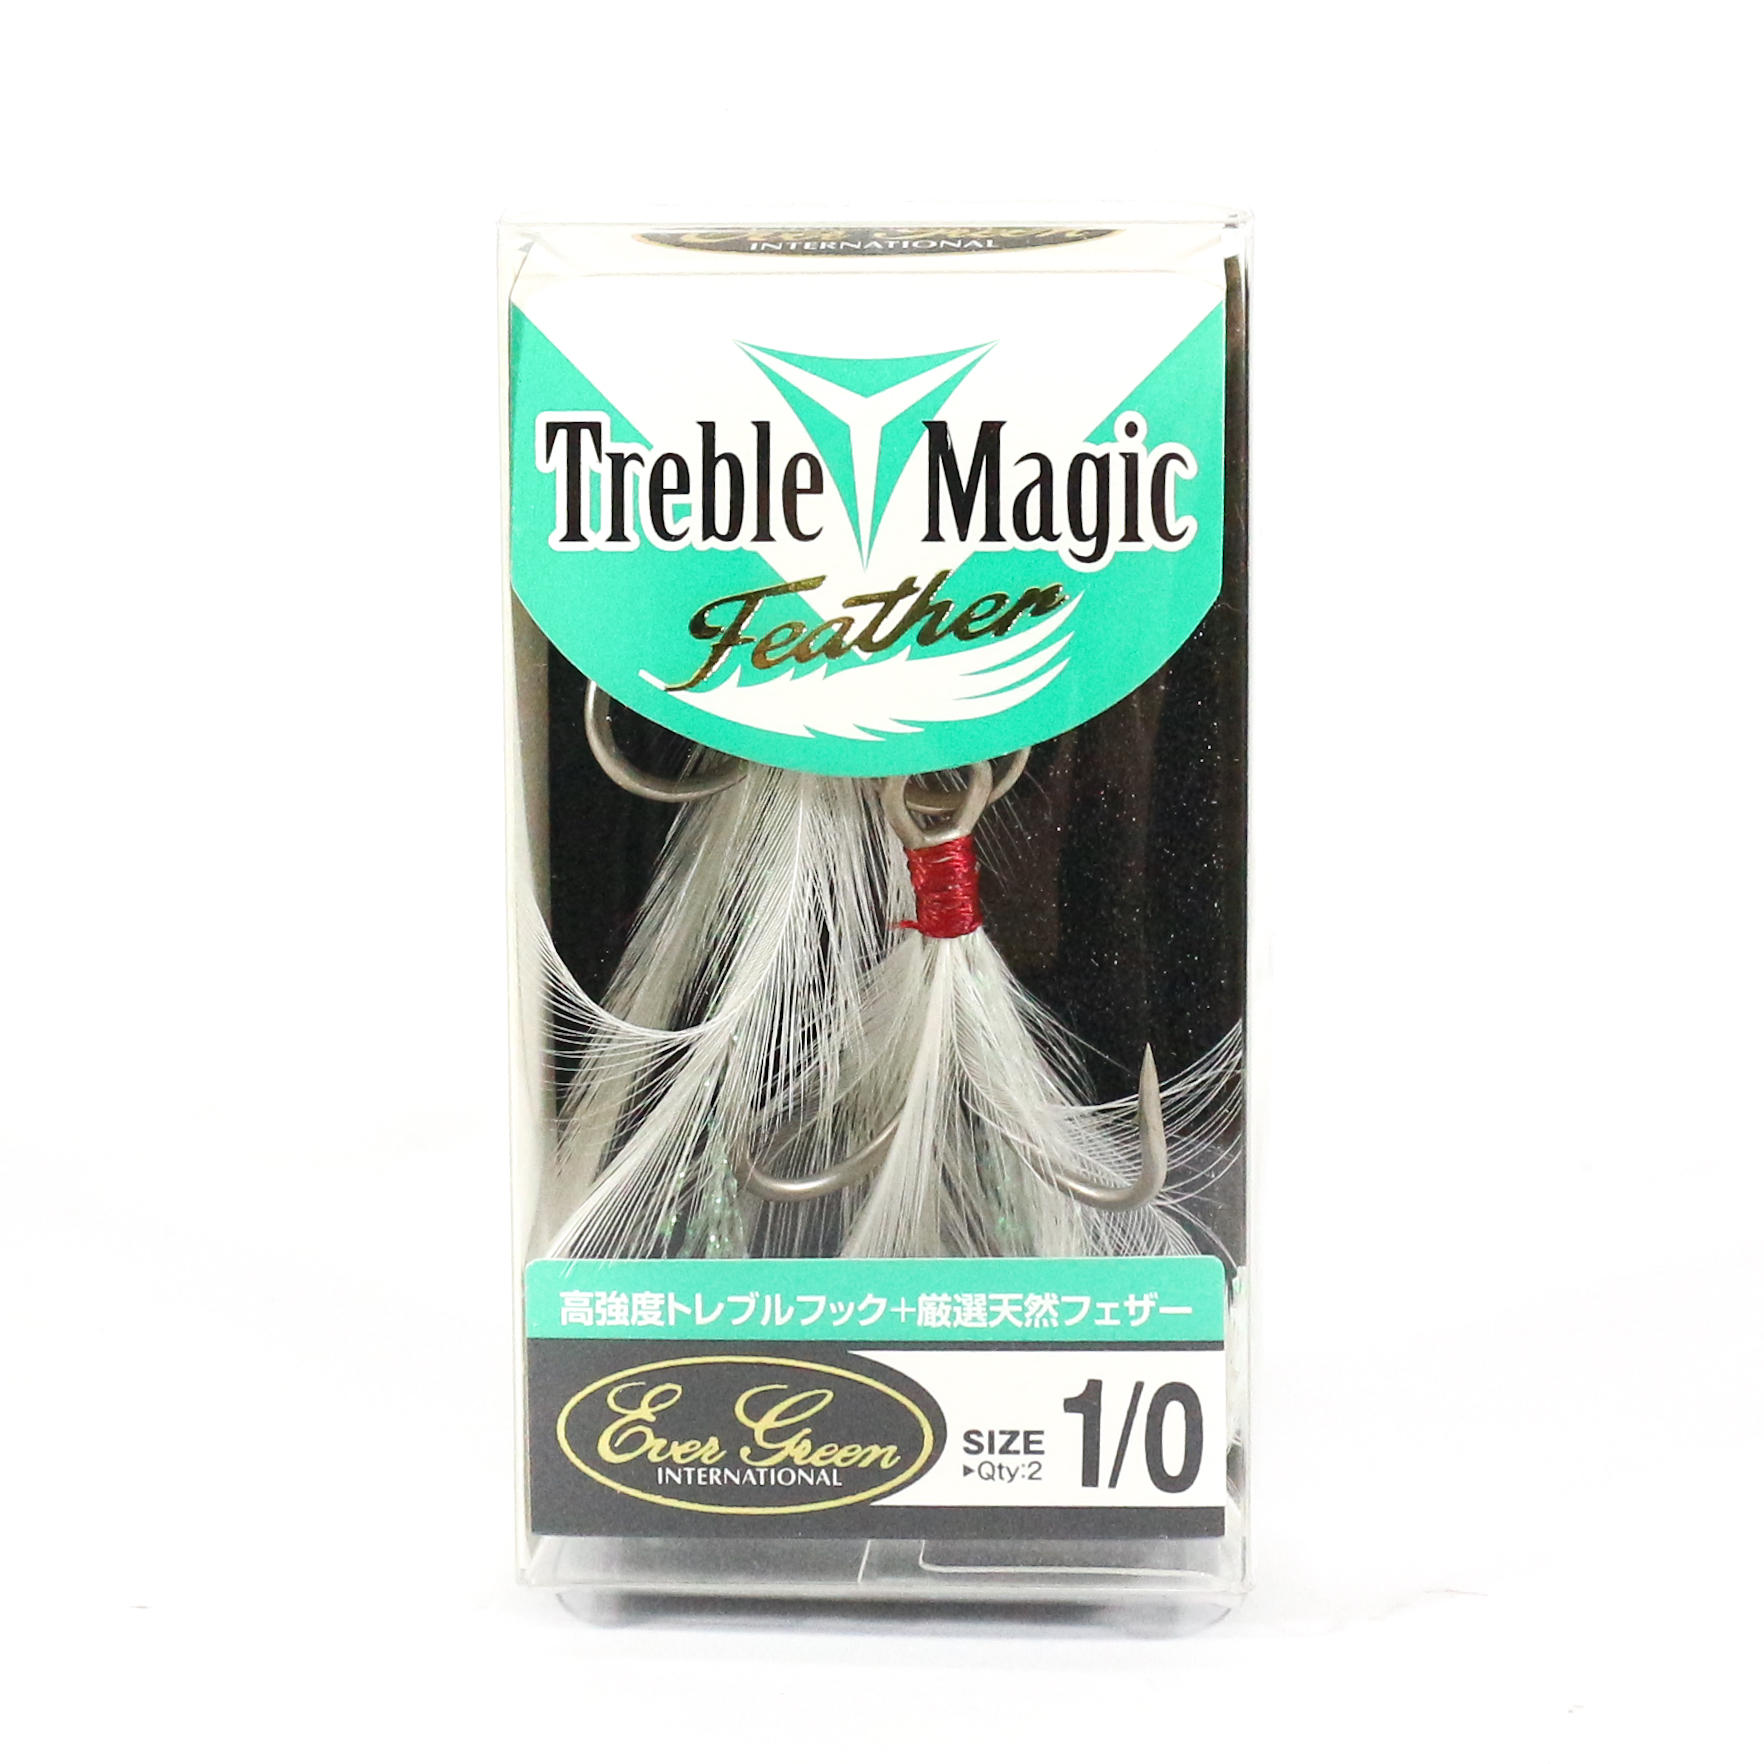 Evergreen Treble Hooks Treble Magic Feather Size 1/0 (4090)